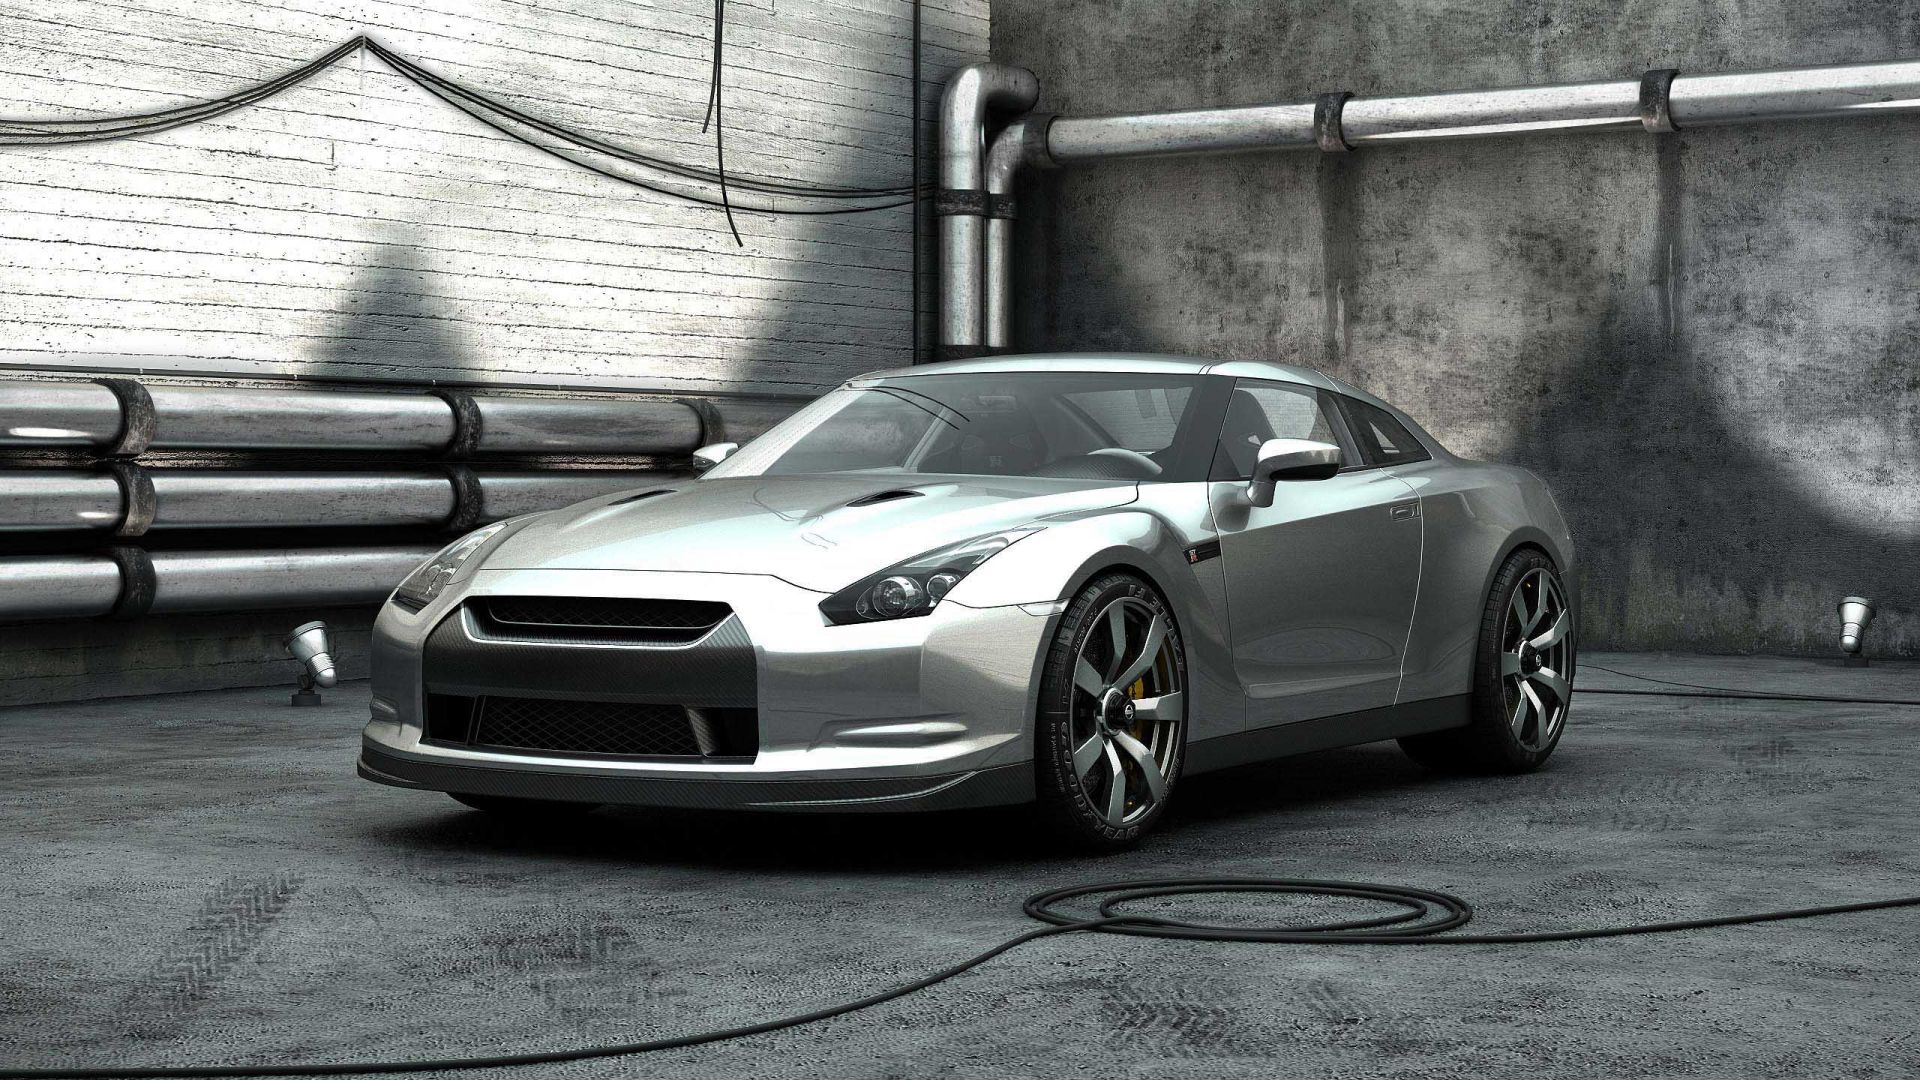 3D Car Silver Color HD Other Cars Wallpapers for Mobile